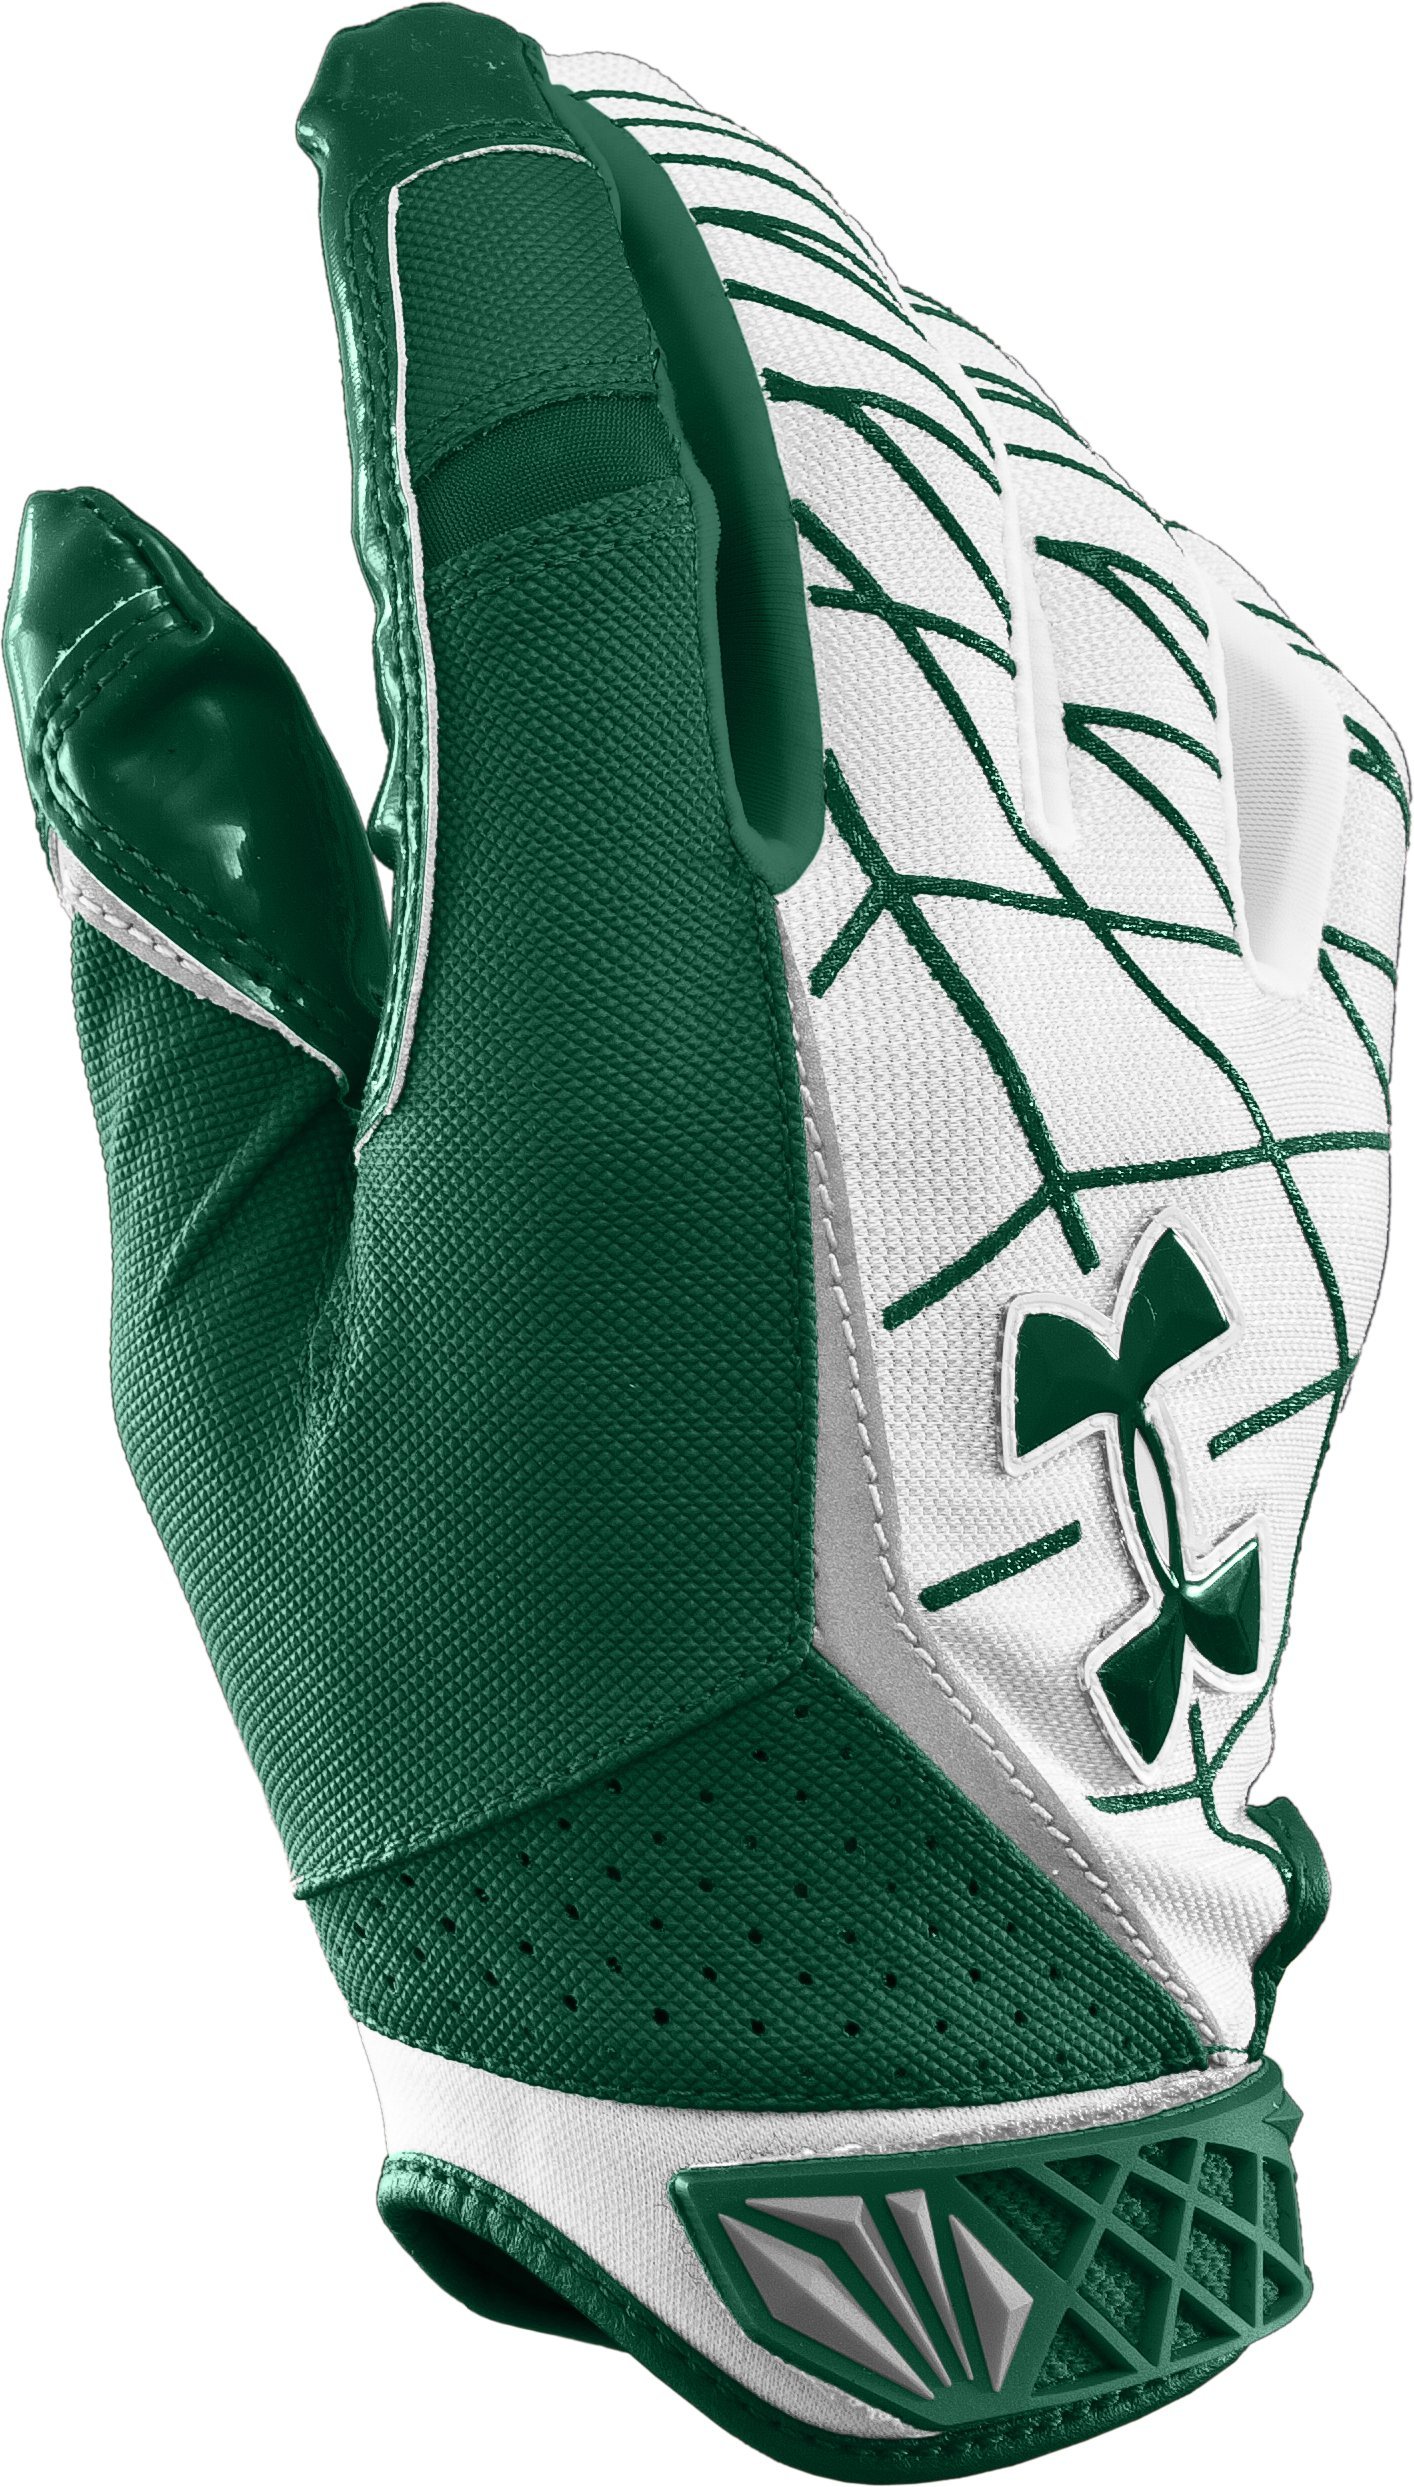 Men's UA Warp Speed Football Gloves, Forest Green